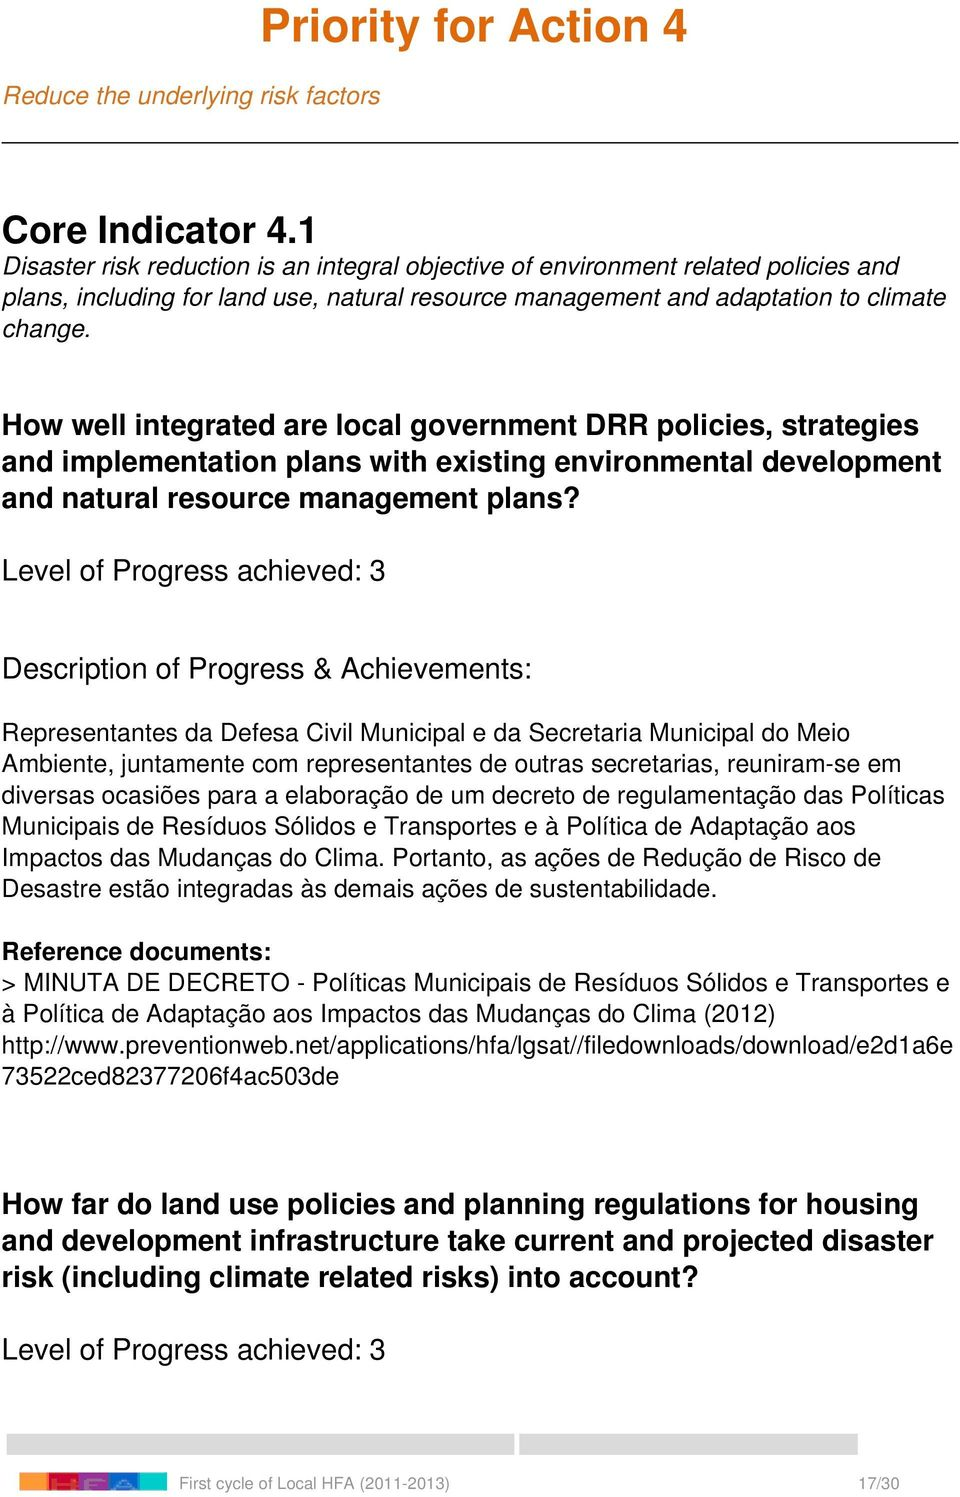 How well integrated are local government DRR policies, strategies and implementation plans with existing environmental development and natural resource management plans?